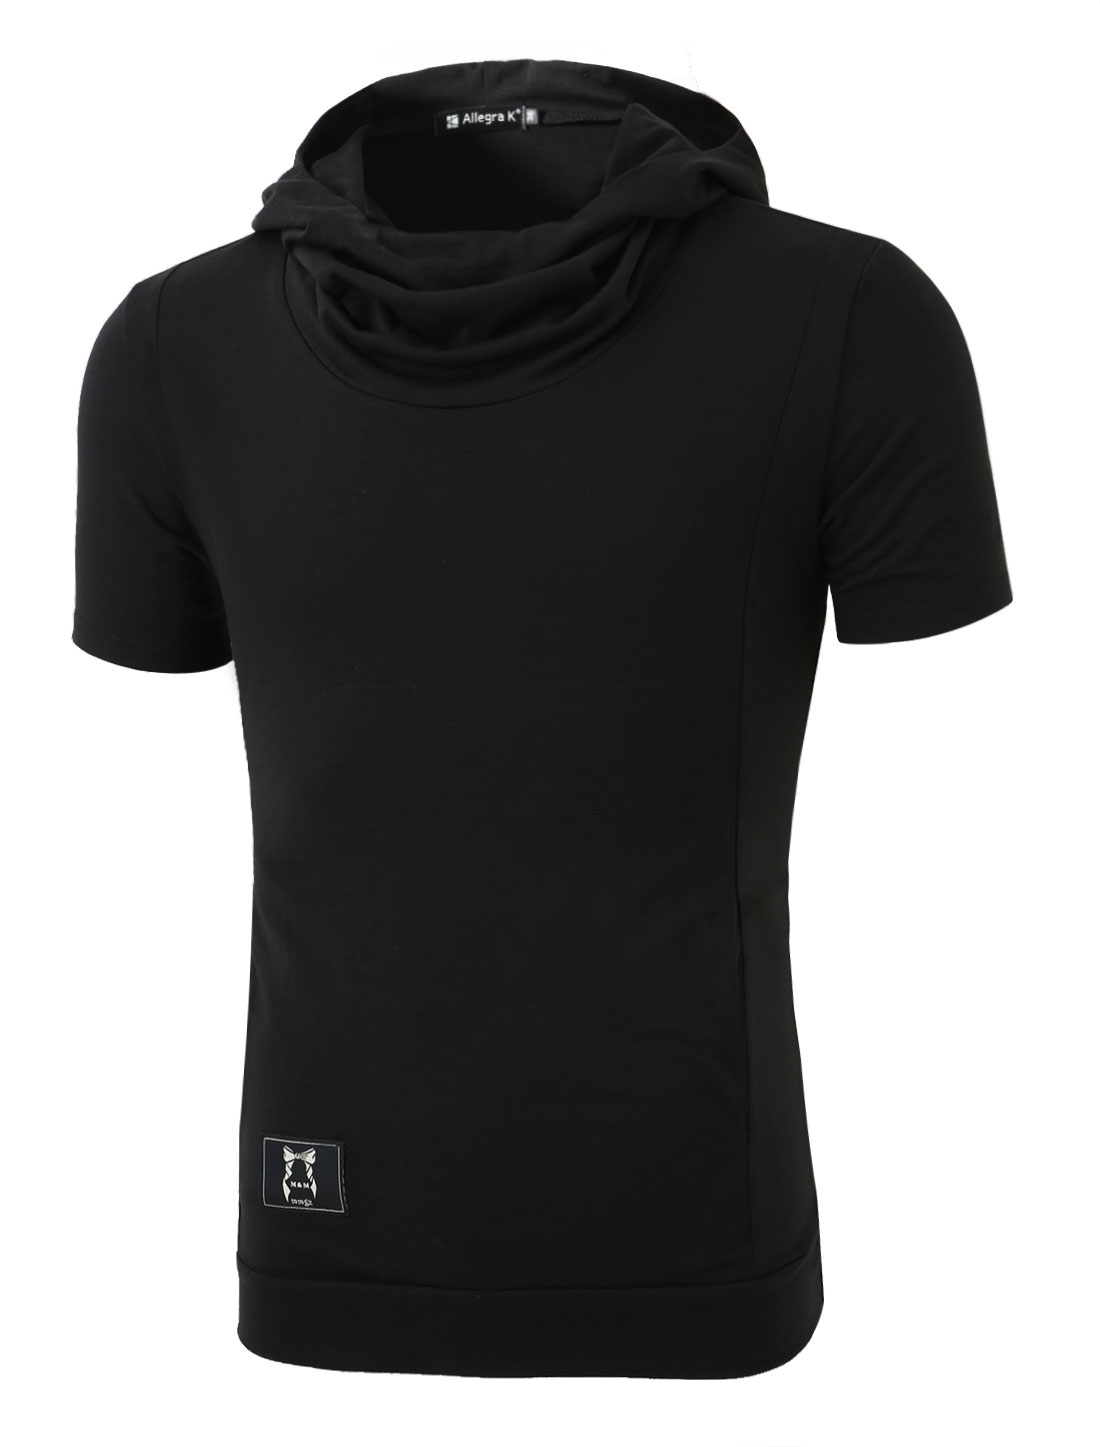 Mens Trendy Black Casual NEW Stylish Cowl Neck Hooded T-shirt Tops S